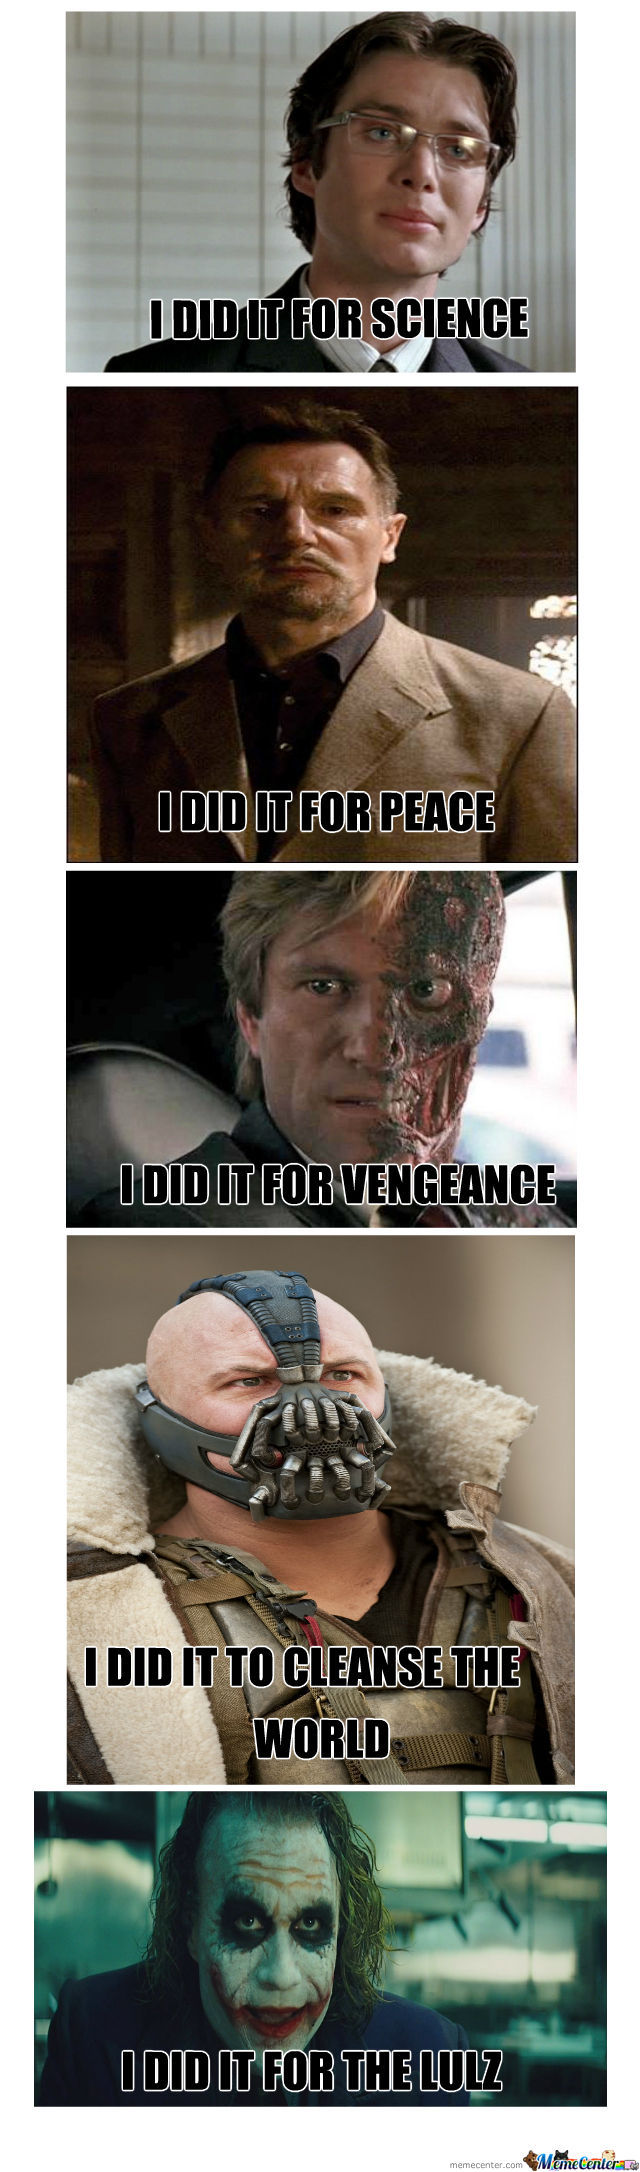 Why Dark Knight Villains Did It